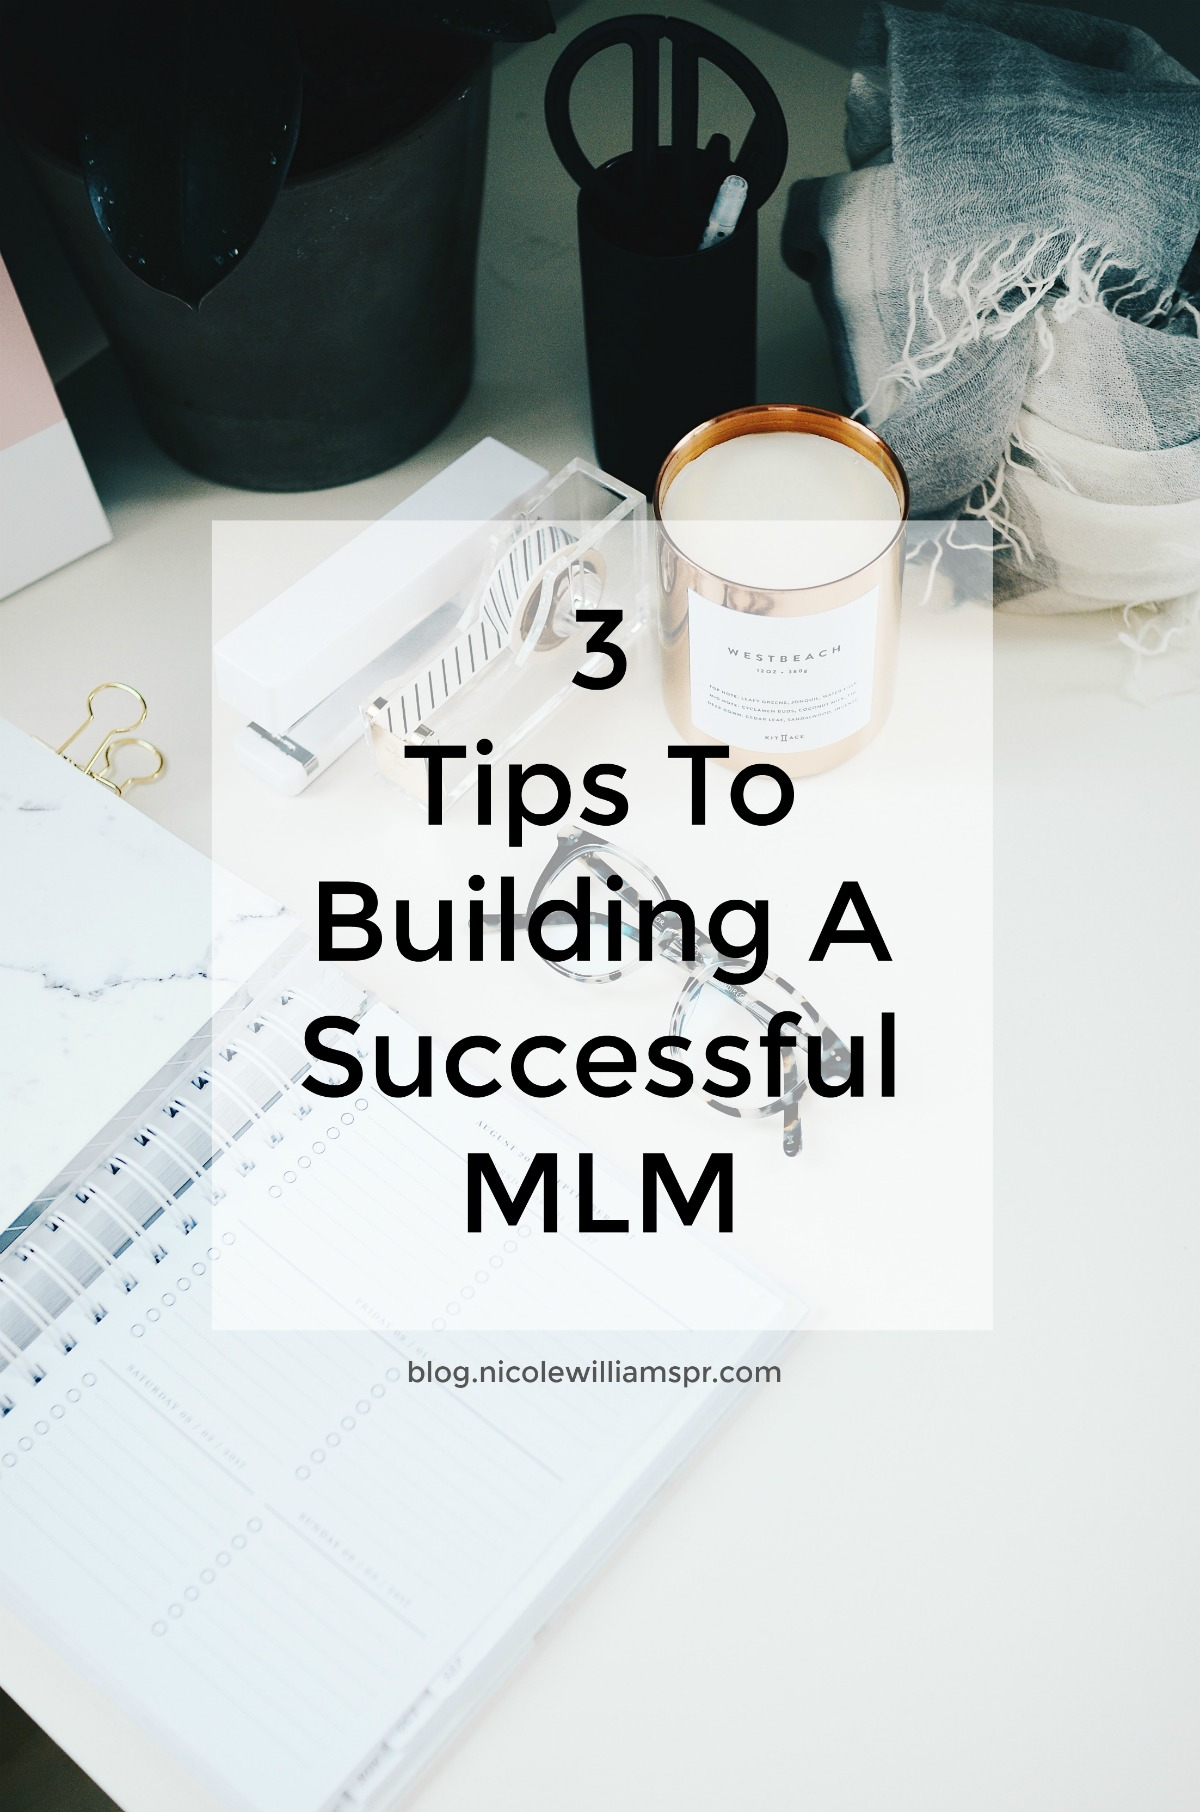 MLMs are a great way to be your own boss without the high risk and high entry cost association.